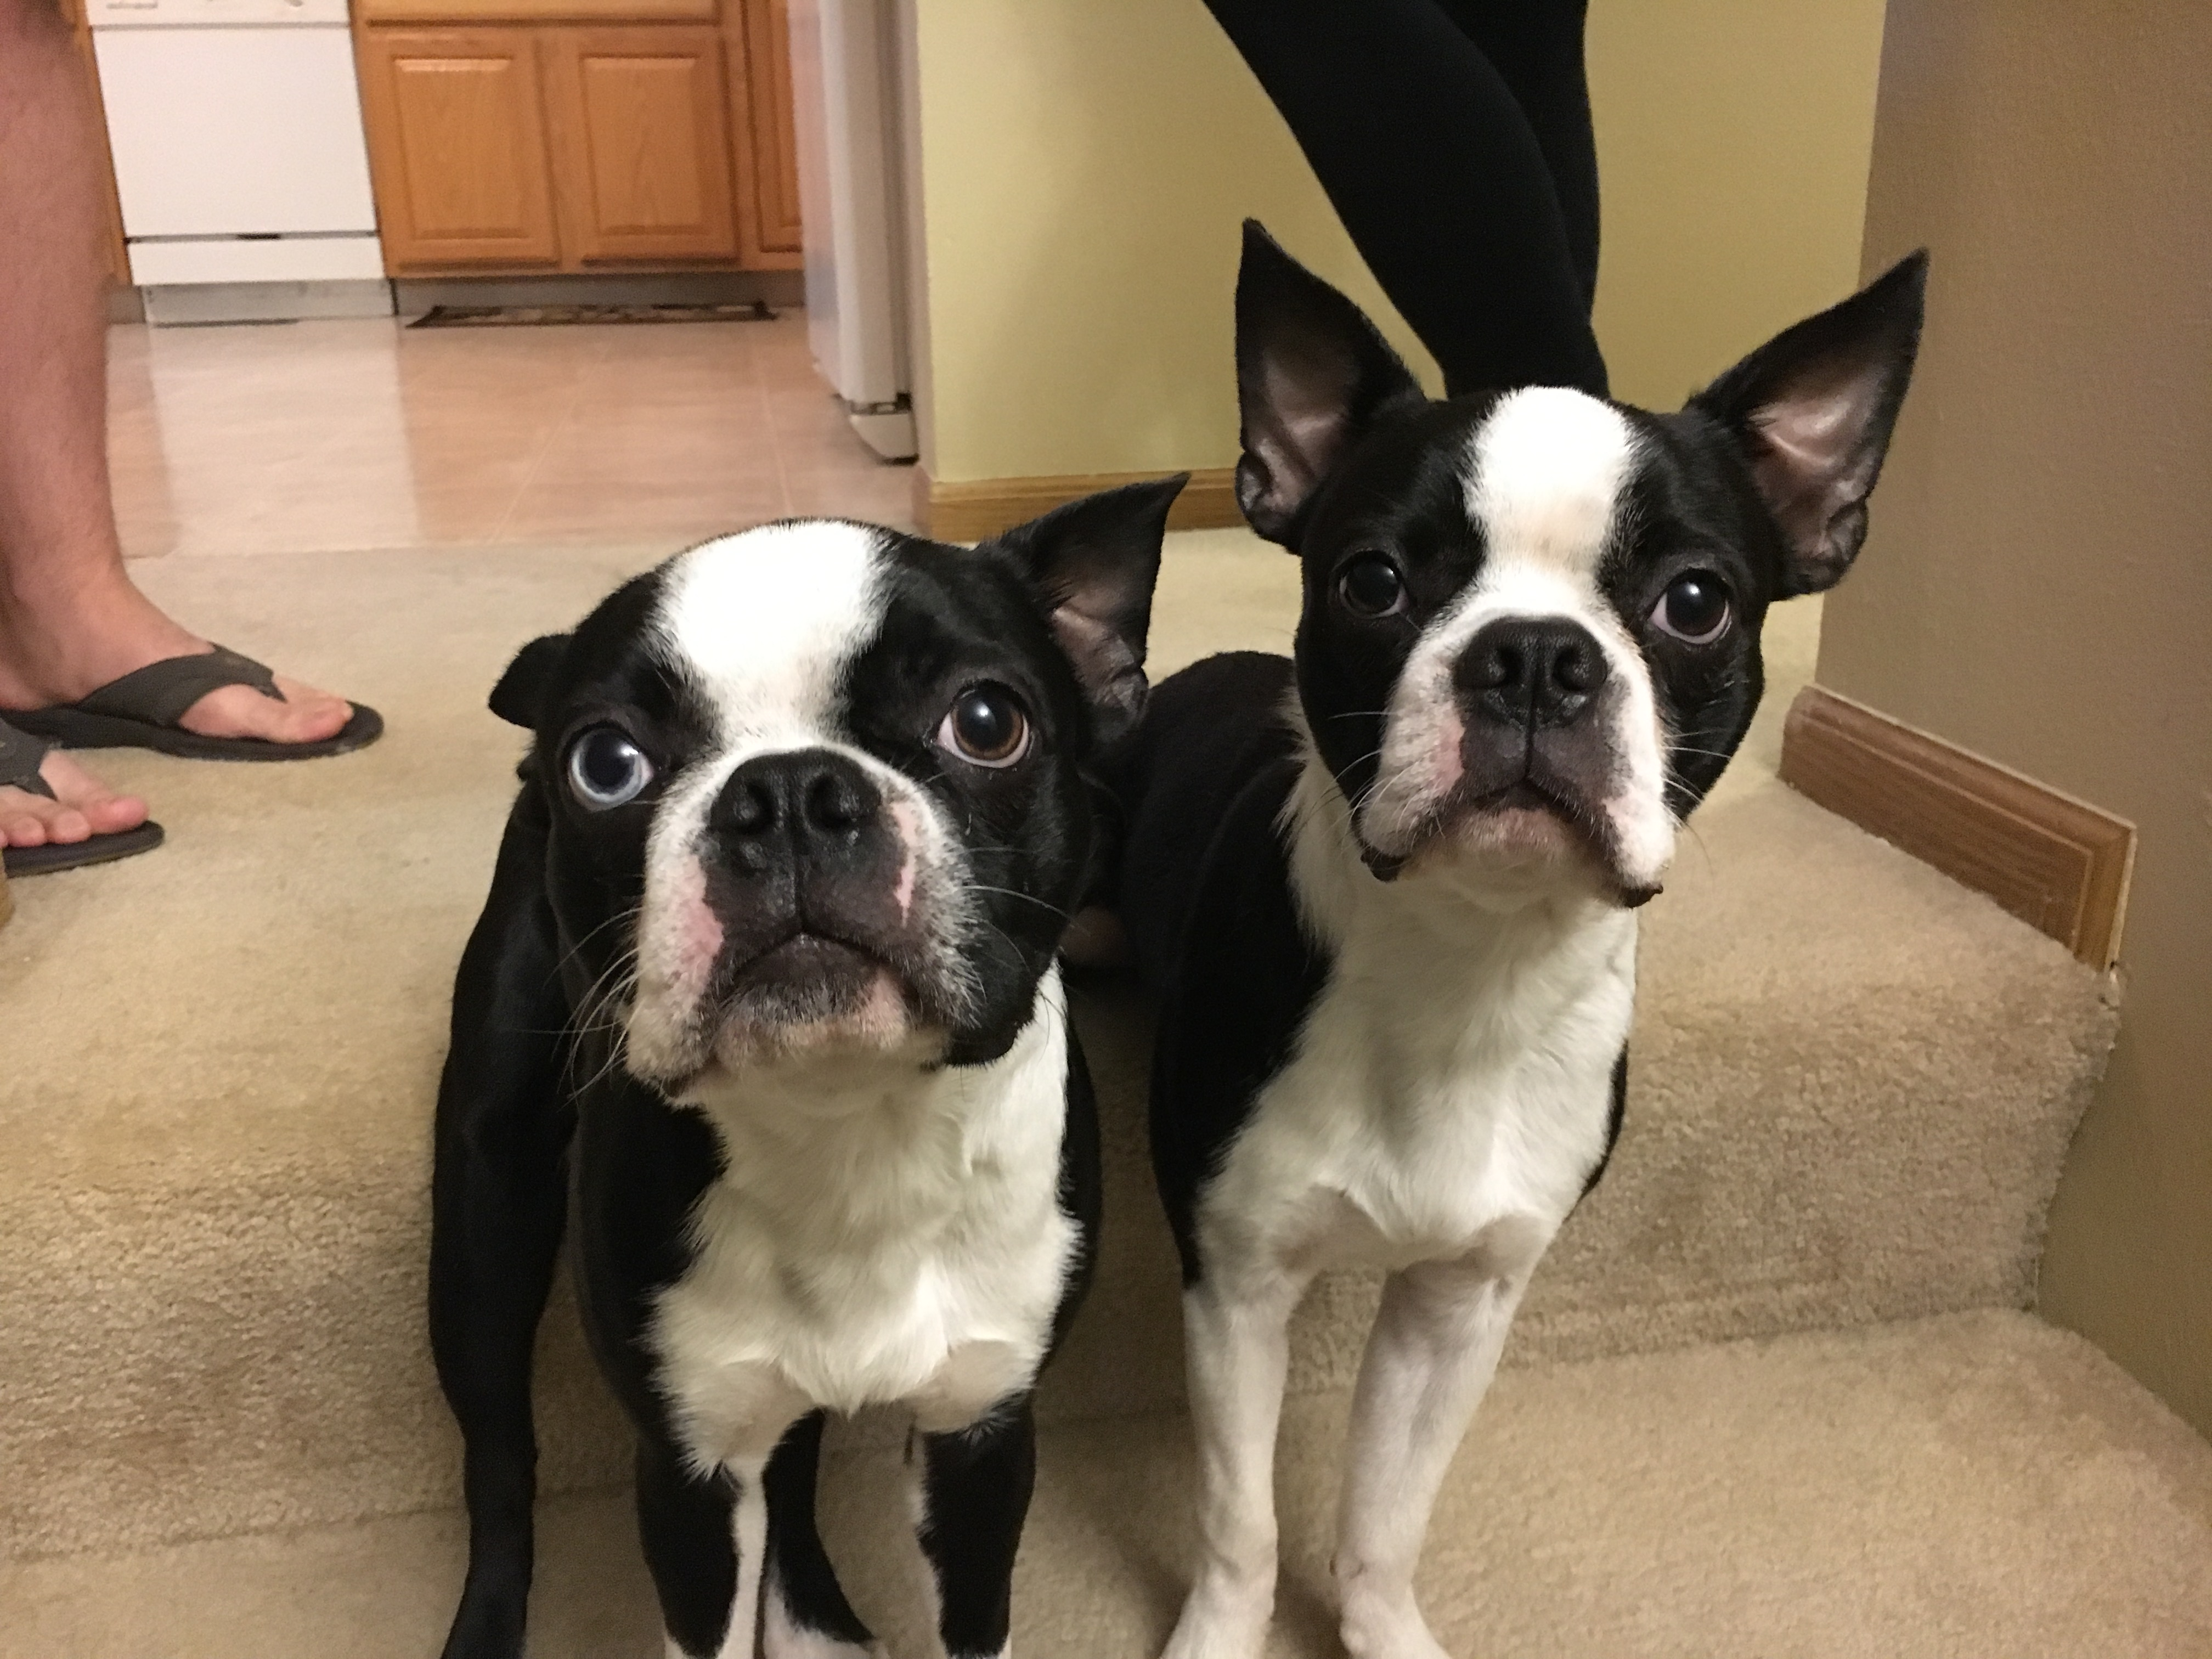 Huck And Bo Are A Pair Of Nine Month Old Boston Terrier Siblings Who Live In West Omaha Their Guardian Scheduled Puppy Obence Training Session With Me